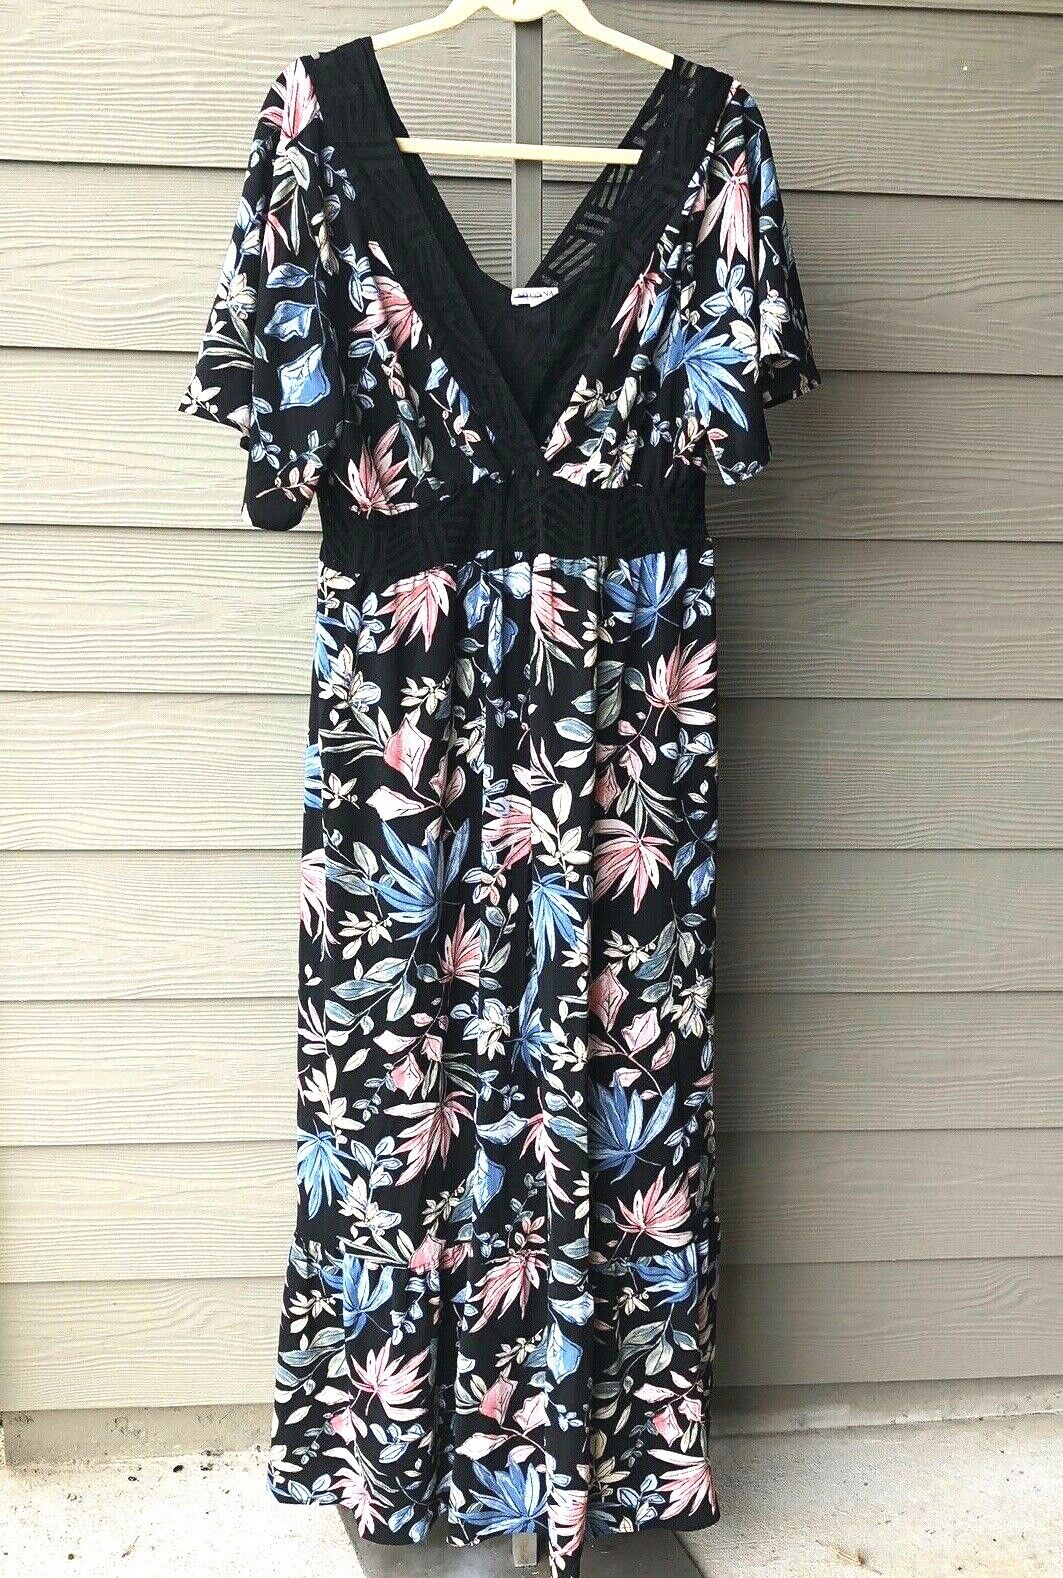 KIYONNA  3 3X floral maxi dress boho Daydream schwarz lace trim v-neck new 22 24